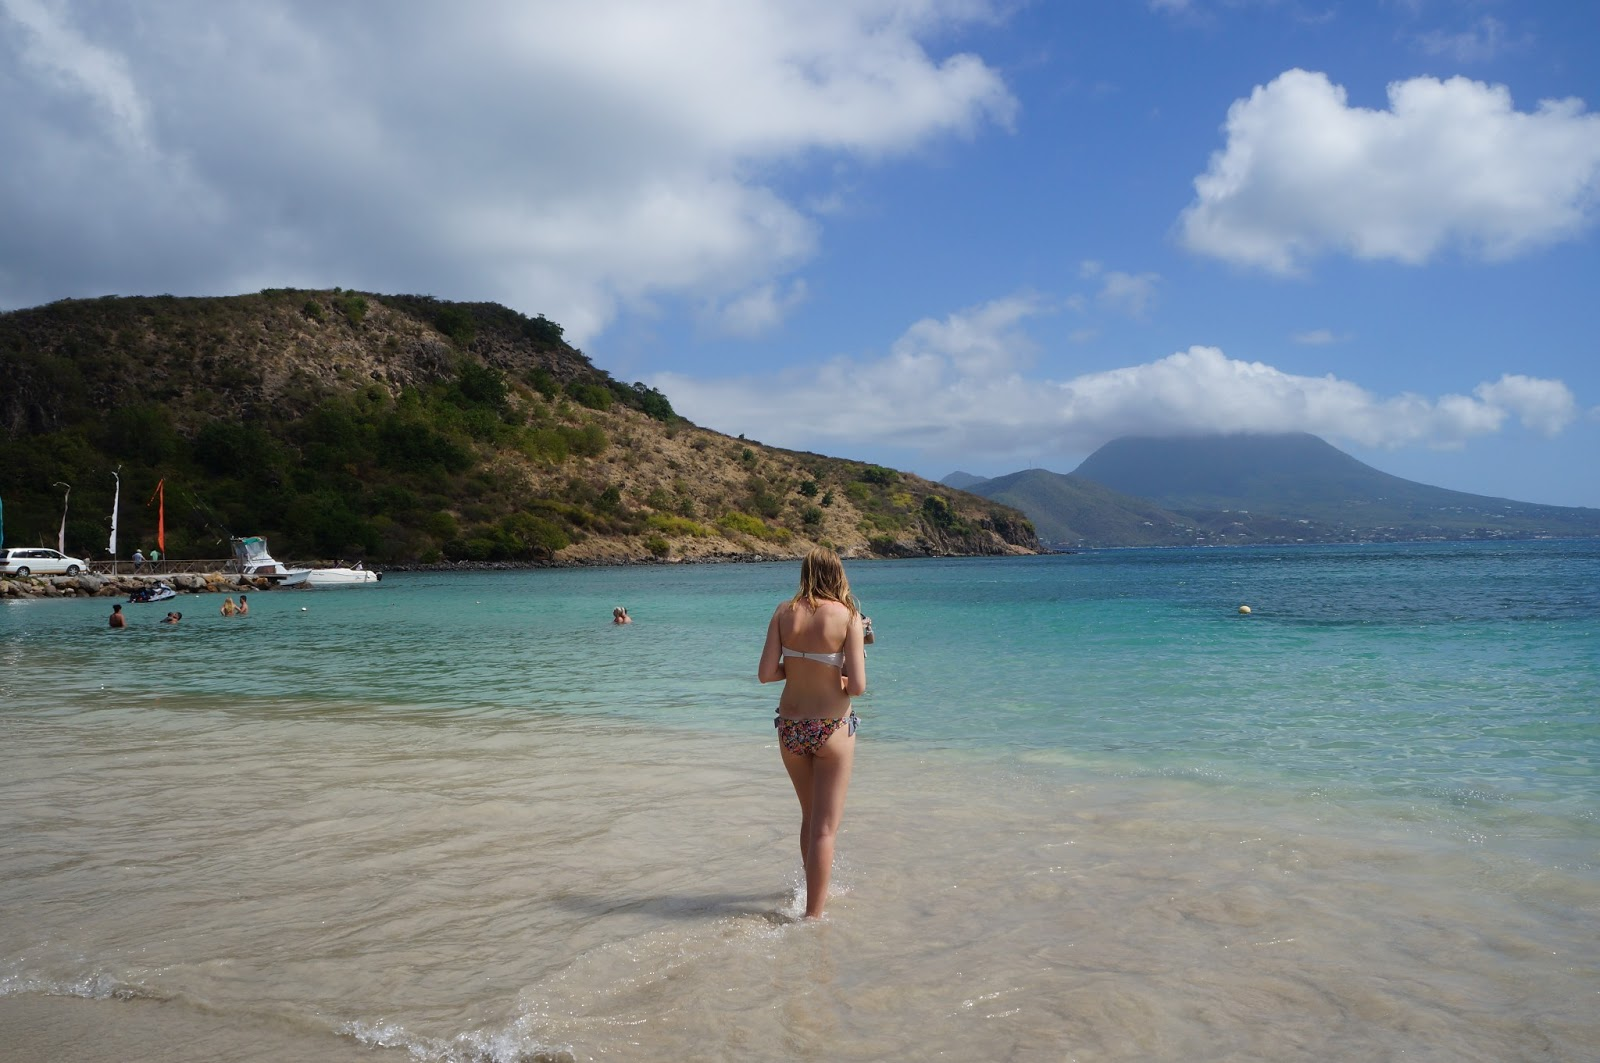 st kitts nude beach photos